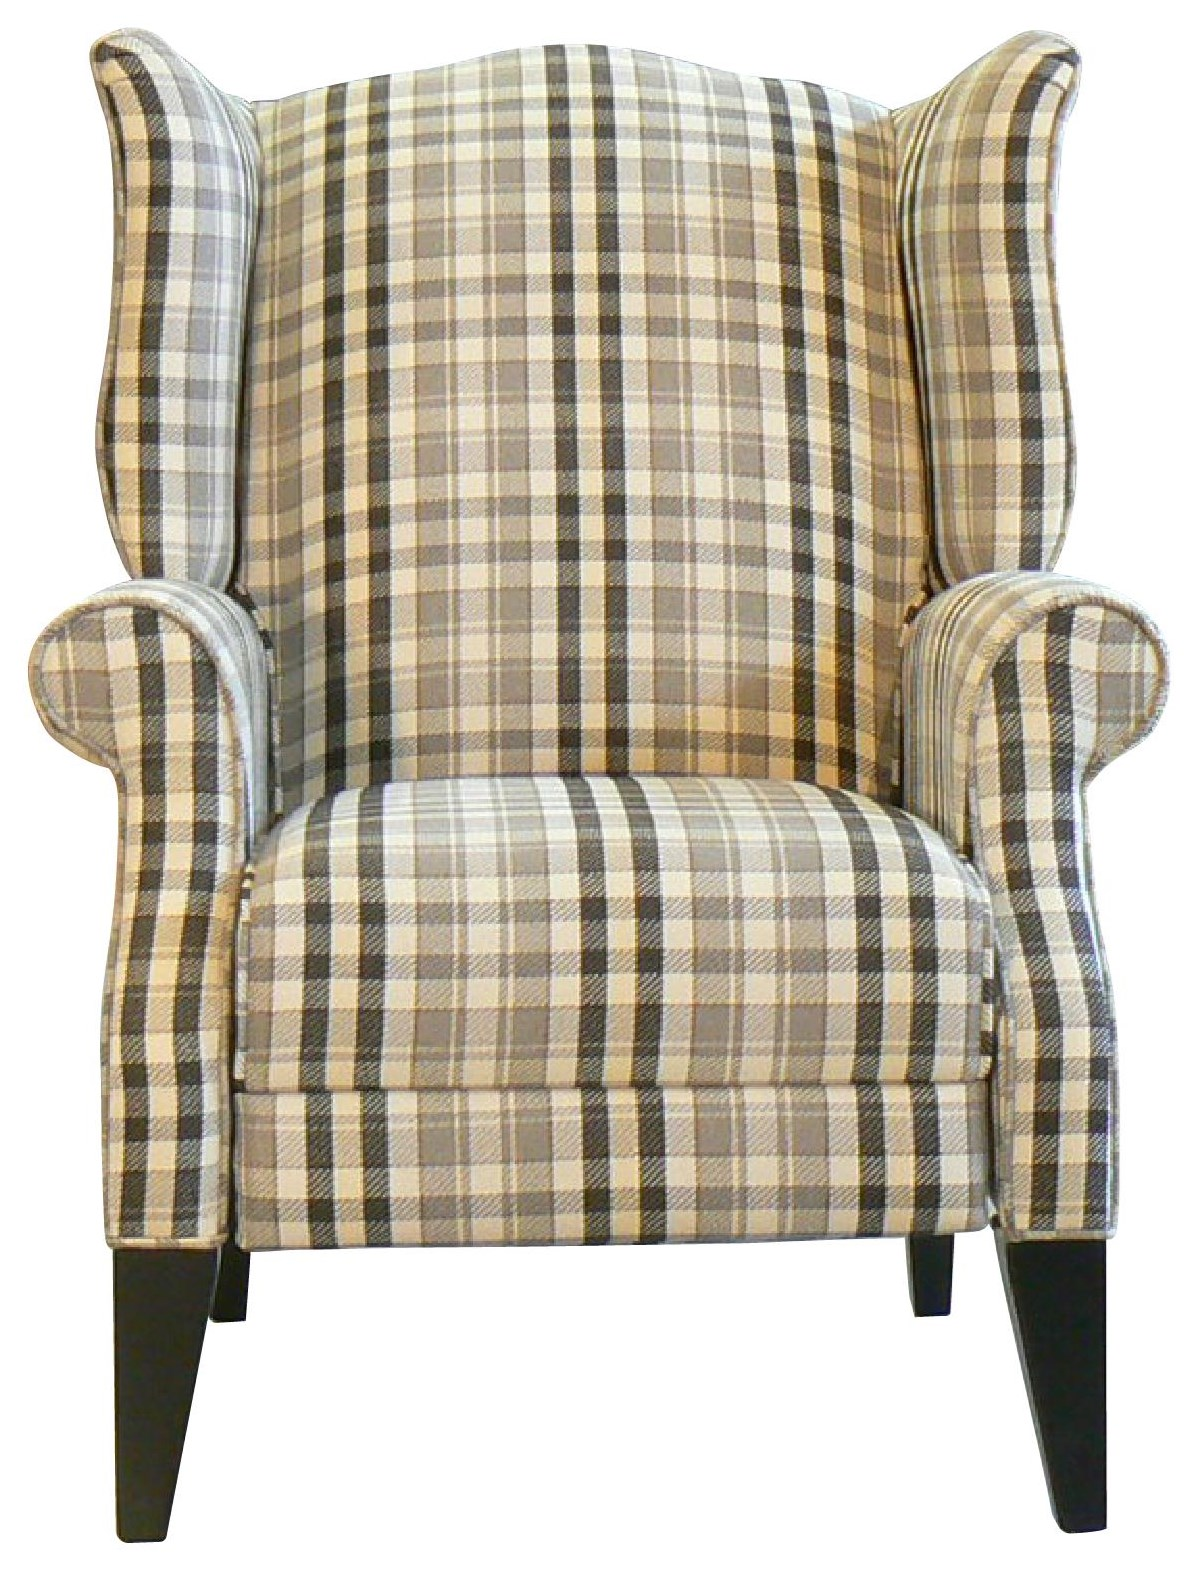 Ashby Push Back Wing Chair by Taelor Designs at Bennett's Furniture and Mattresses